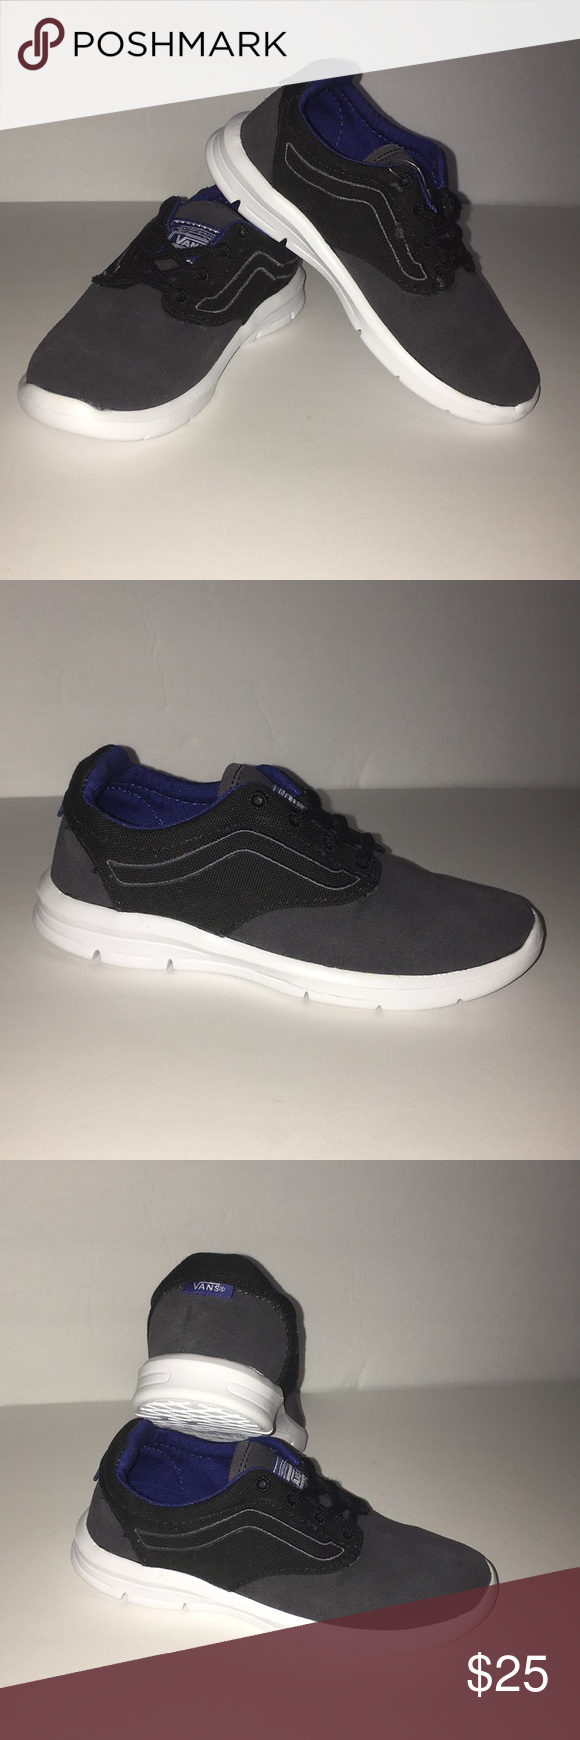 8416359098f8 Vans Iso 1.5 (Pop) NWOT Vans Iso 1.5 (Pop) Black Sodalite Blue Size 11.0  Kids Vans Shoes Sneakers